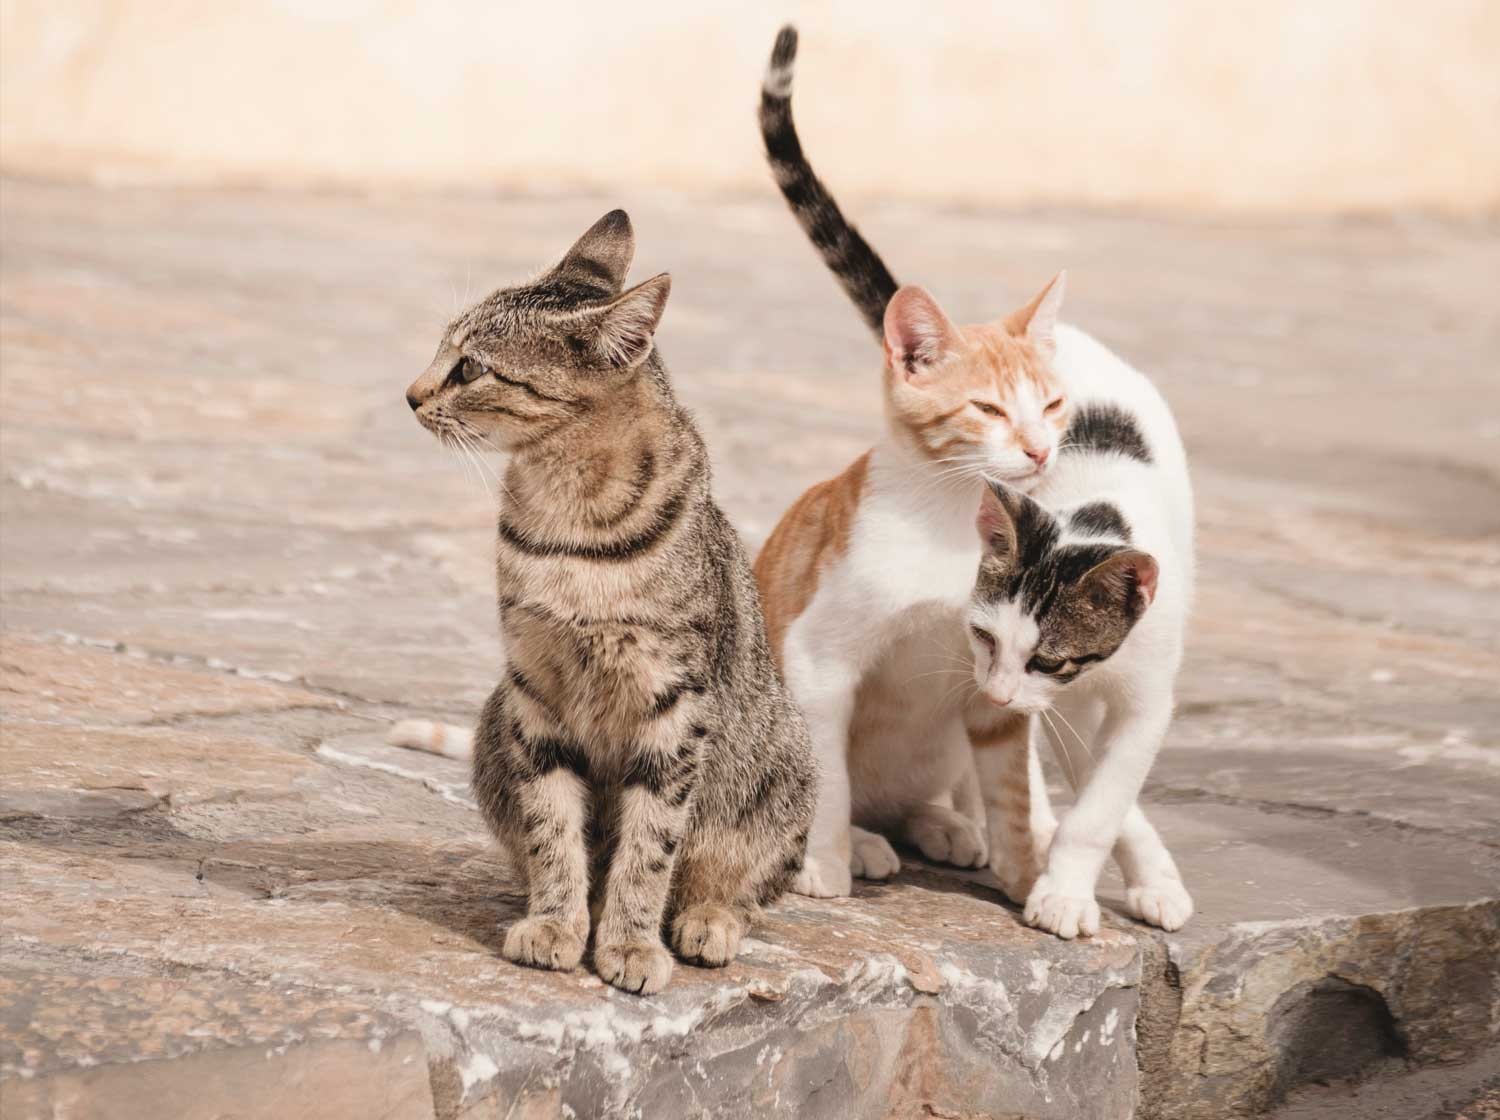 Celebrate, recognize and spread awareness of the importance of spaying and neutering your pet.